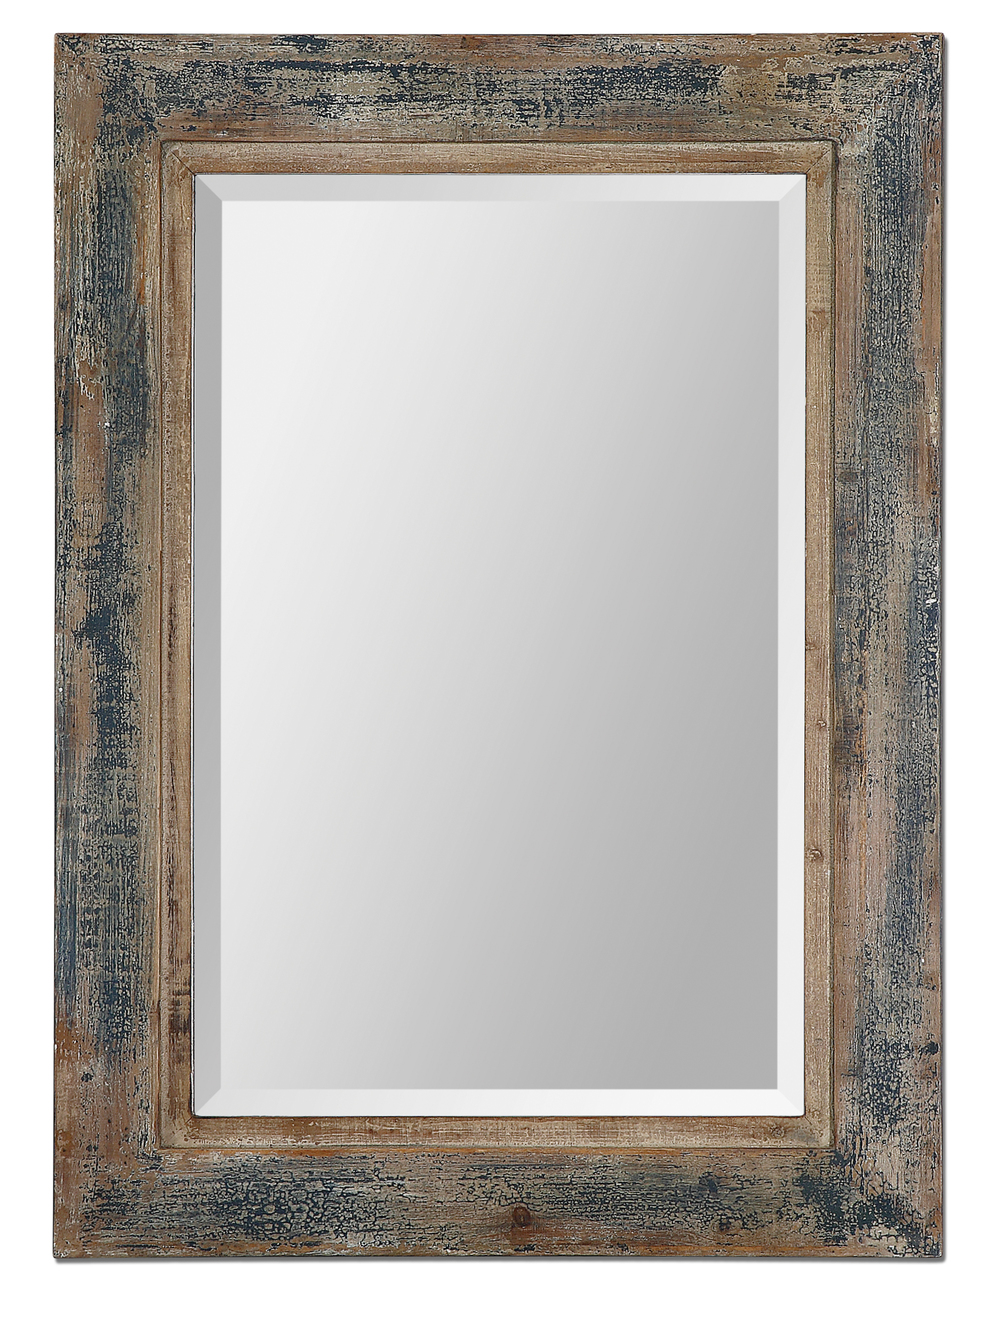 Uttermost Company - Bozeman Distressed Blue Mirror